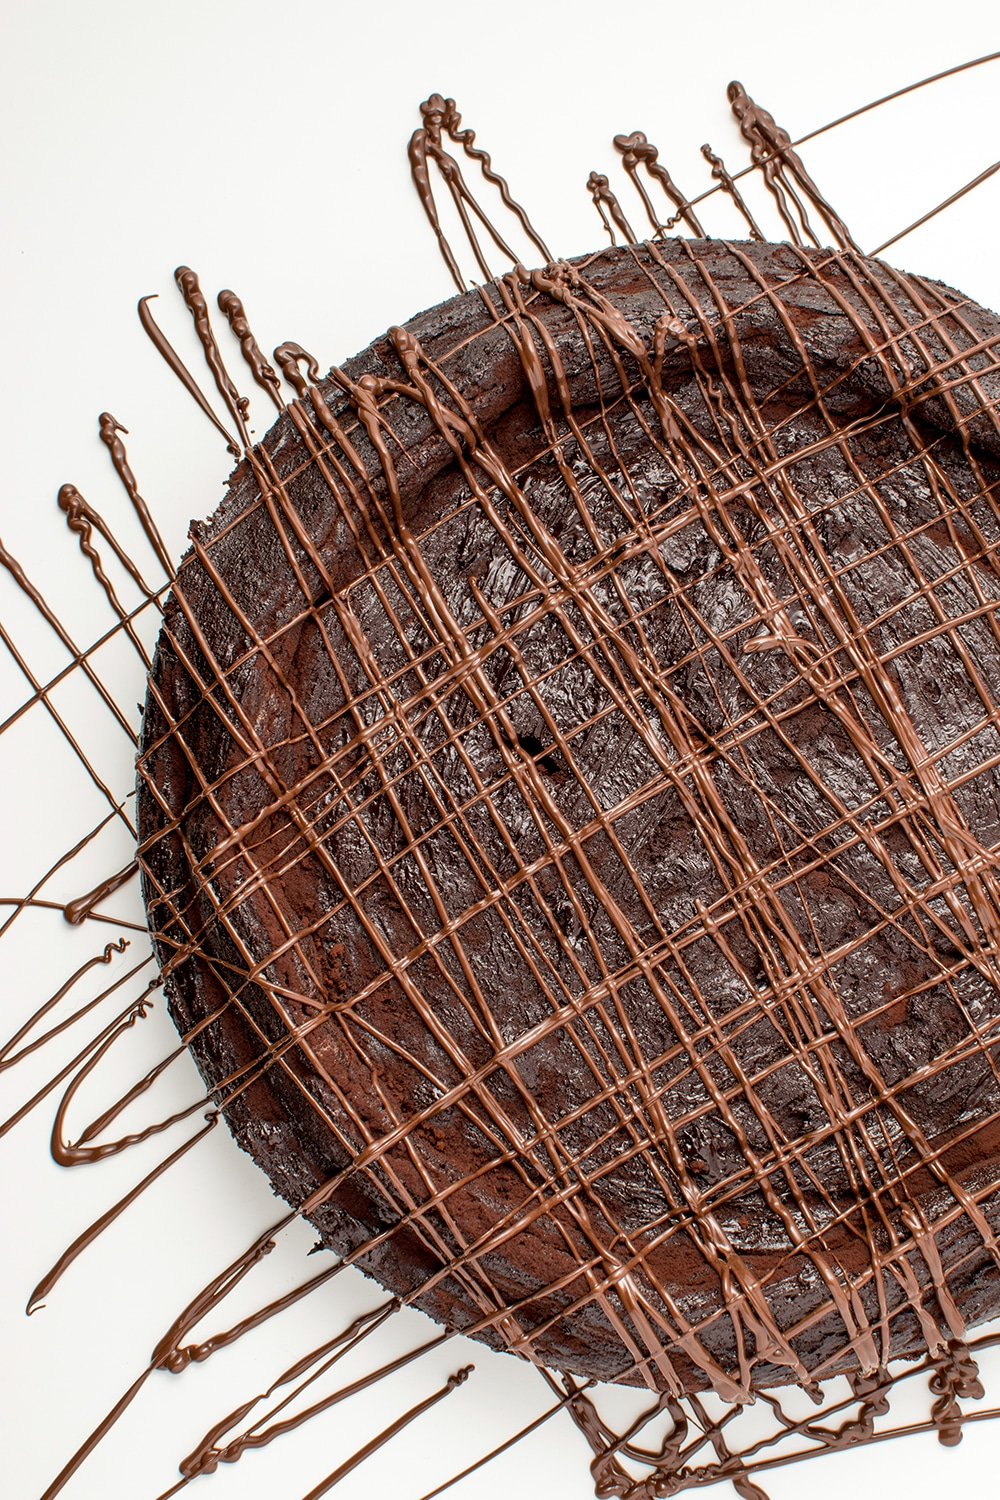 chocolate torte covered in stripes of melted chocolate on a white background